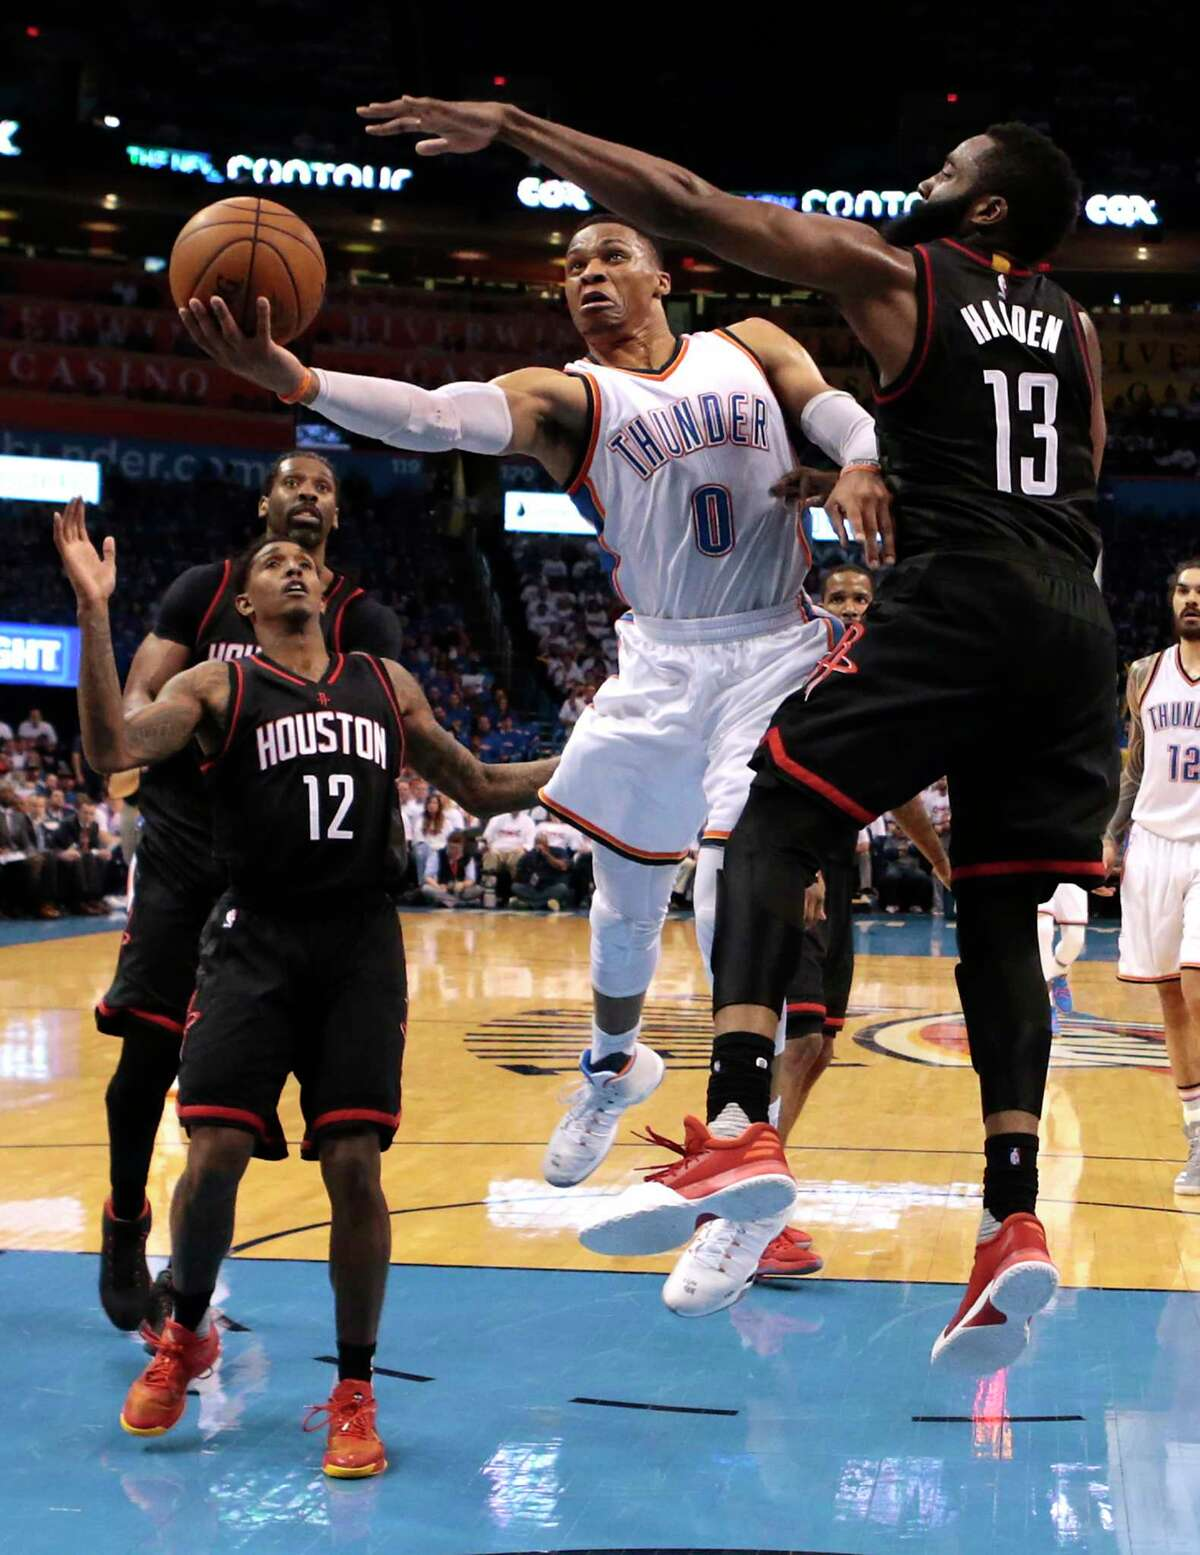 Russell Westbrook (0) got the best of James Harden on this second-half drive, and the Thunder capitalized on Harden's miss at the buzzer to hang on for the win and halve the Rockets' series lead.